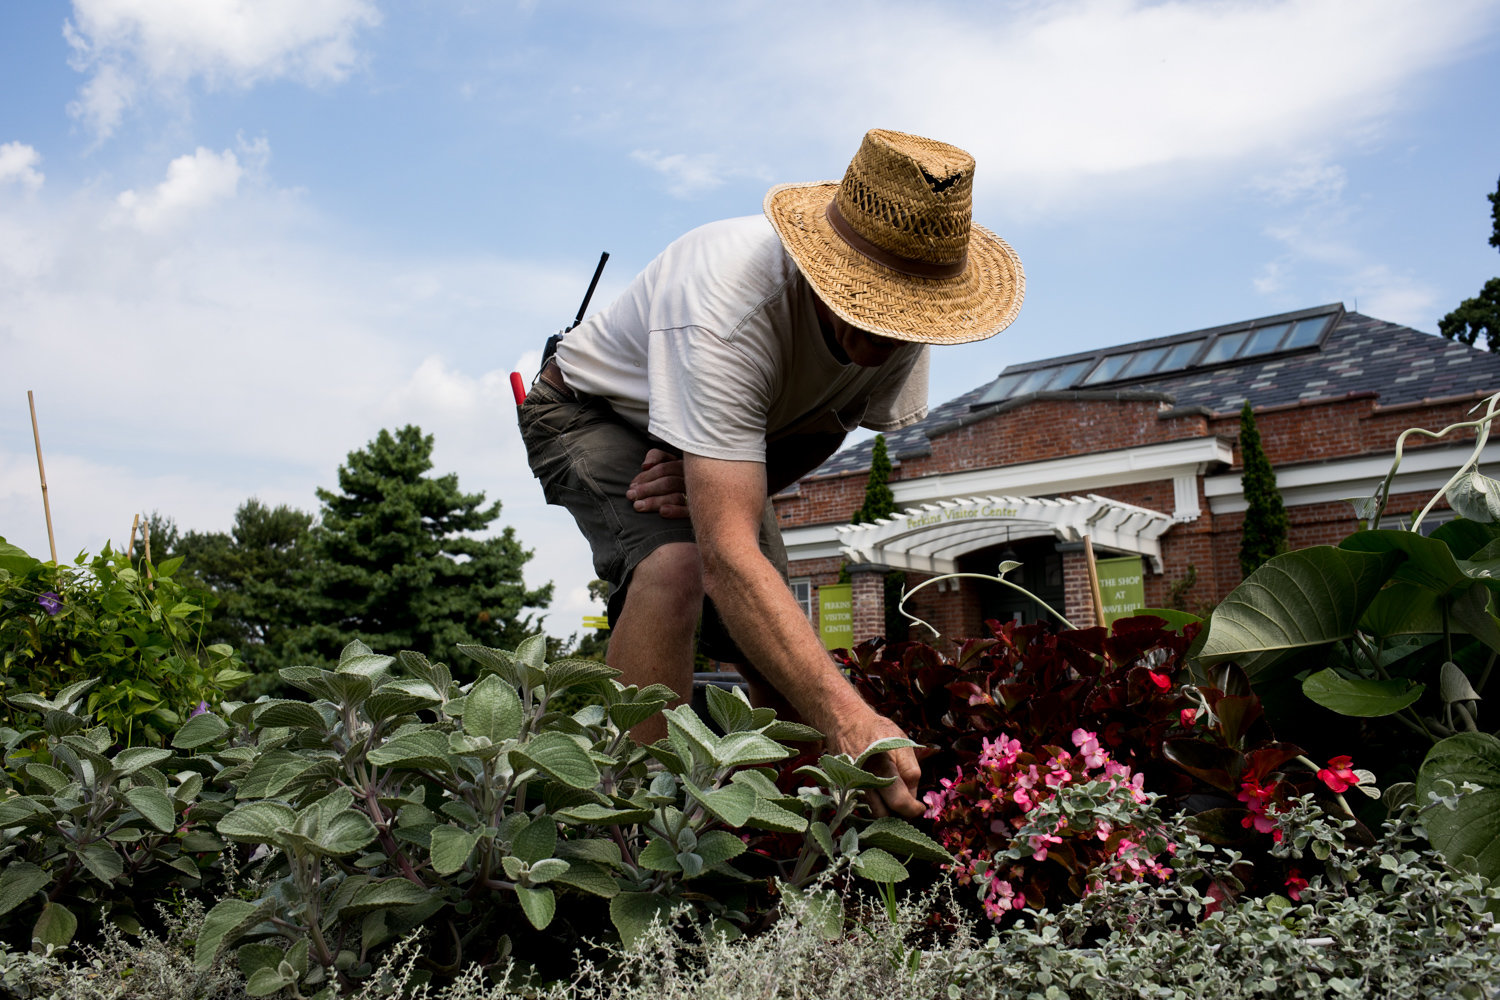 Louis Bauer, Wave Hill's horticulture director, tends to the Paisley Bed in 2018. Since the garden closed its doors to visitors as a result of the coronavirus pandemic, a core crew of gardeners have worked to maintain the grounds.